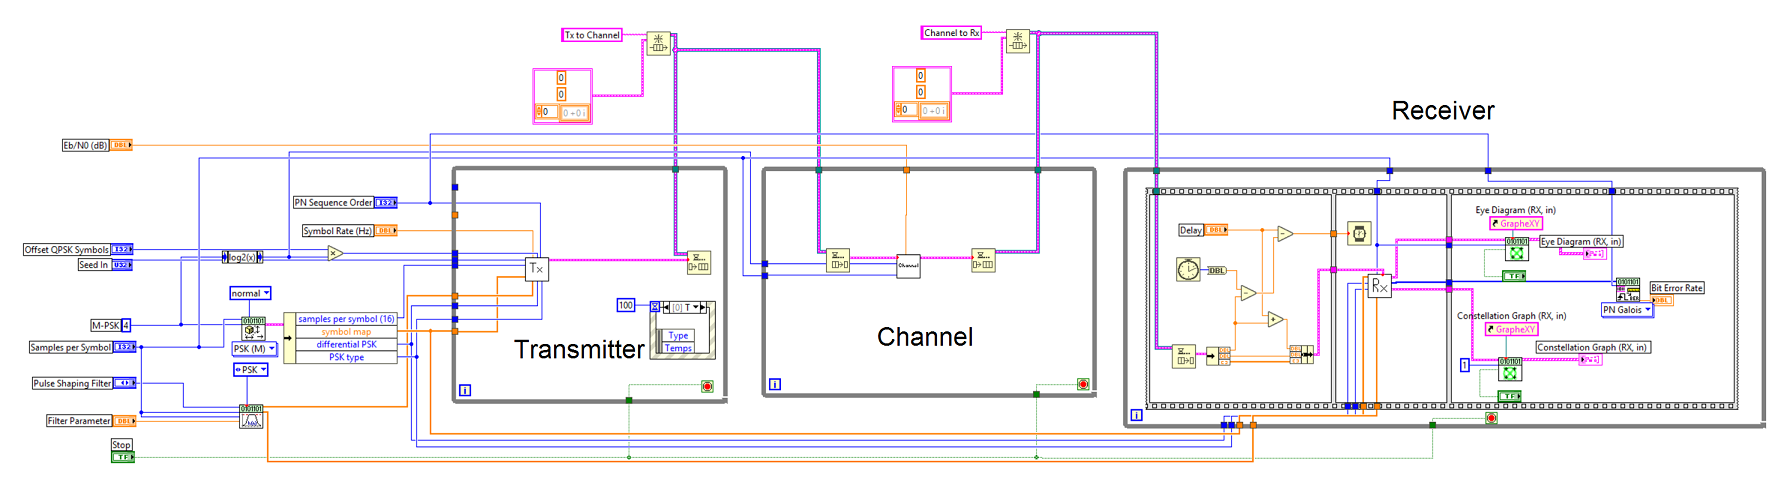 Labview implementation 2016 channel emulation for satellite ourblockdiagramg ccuart Image collections